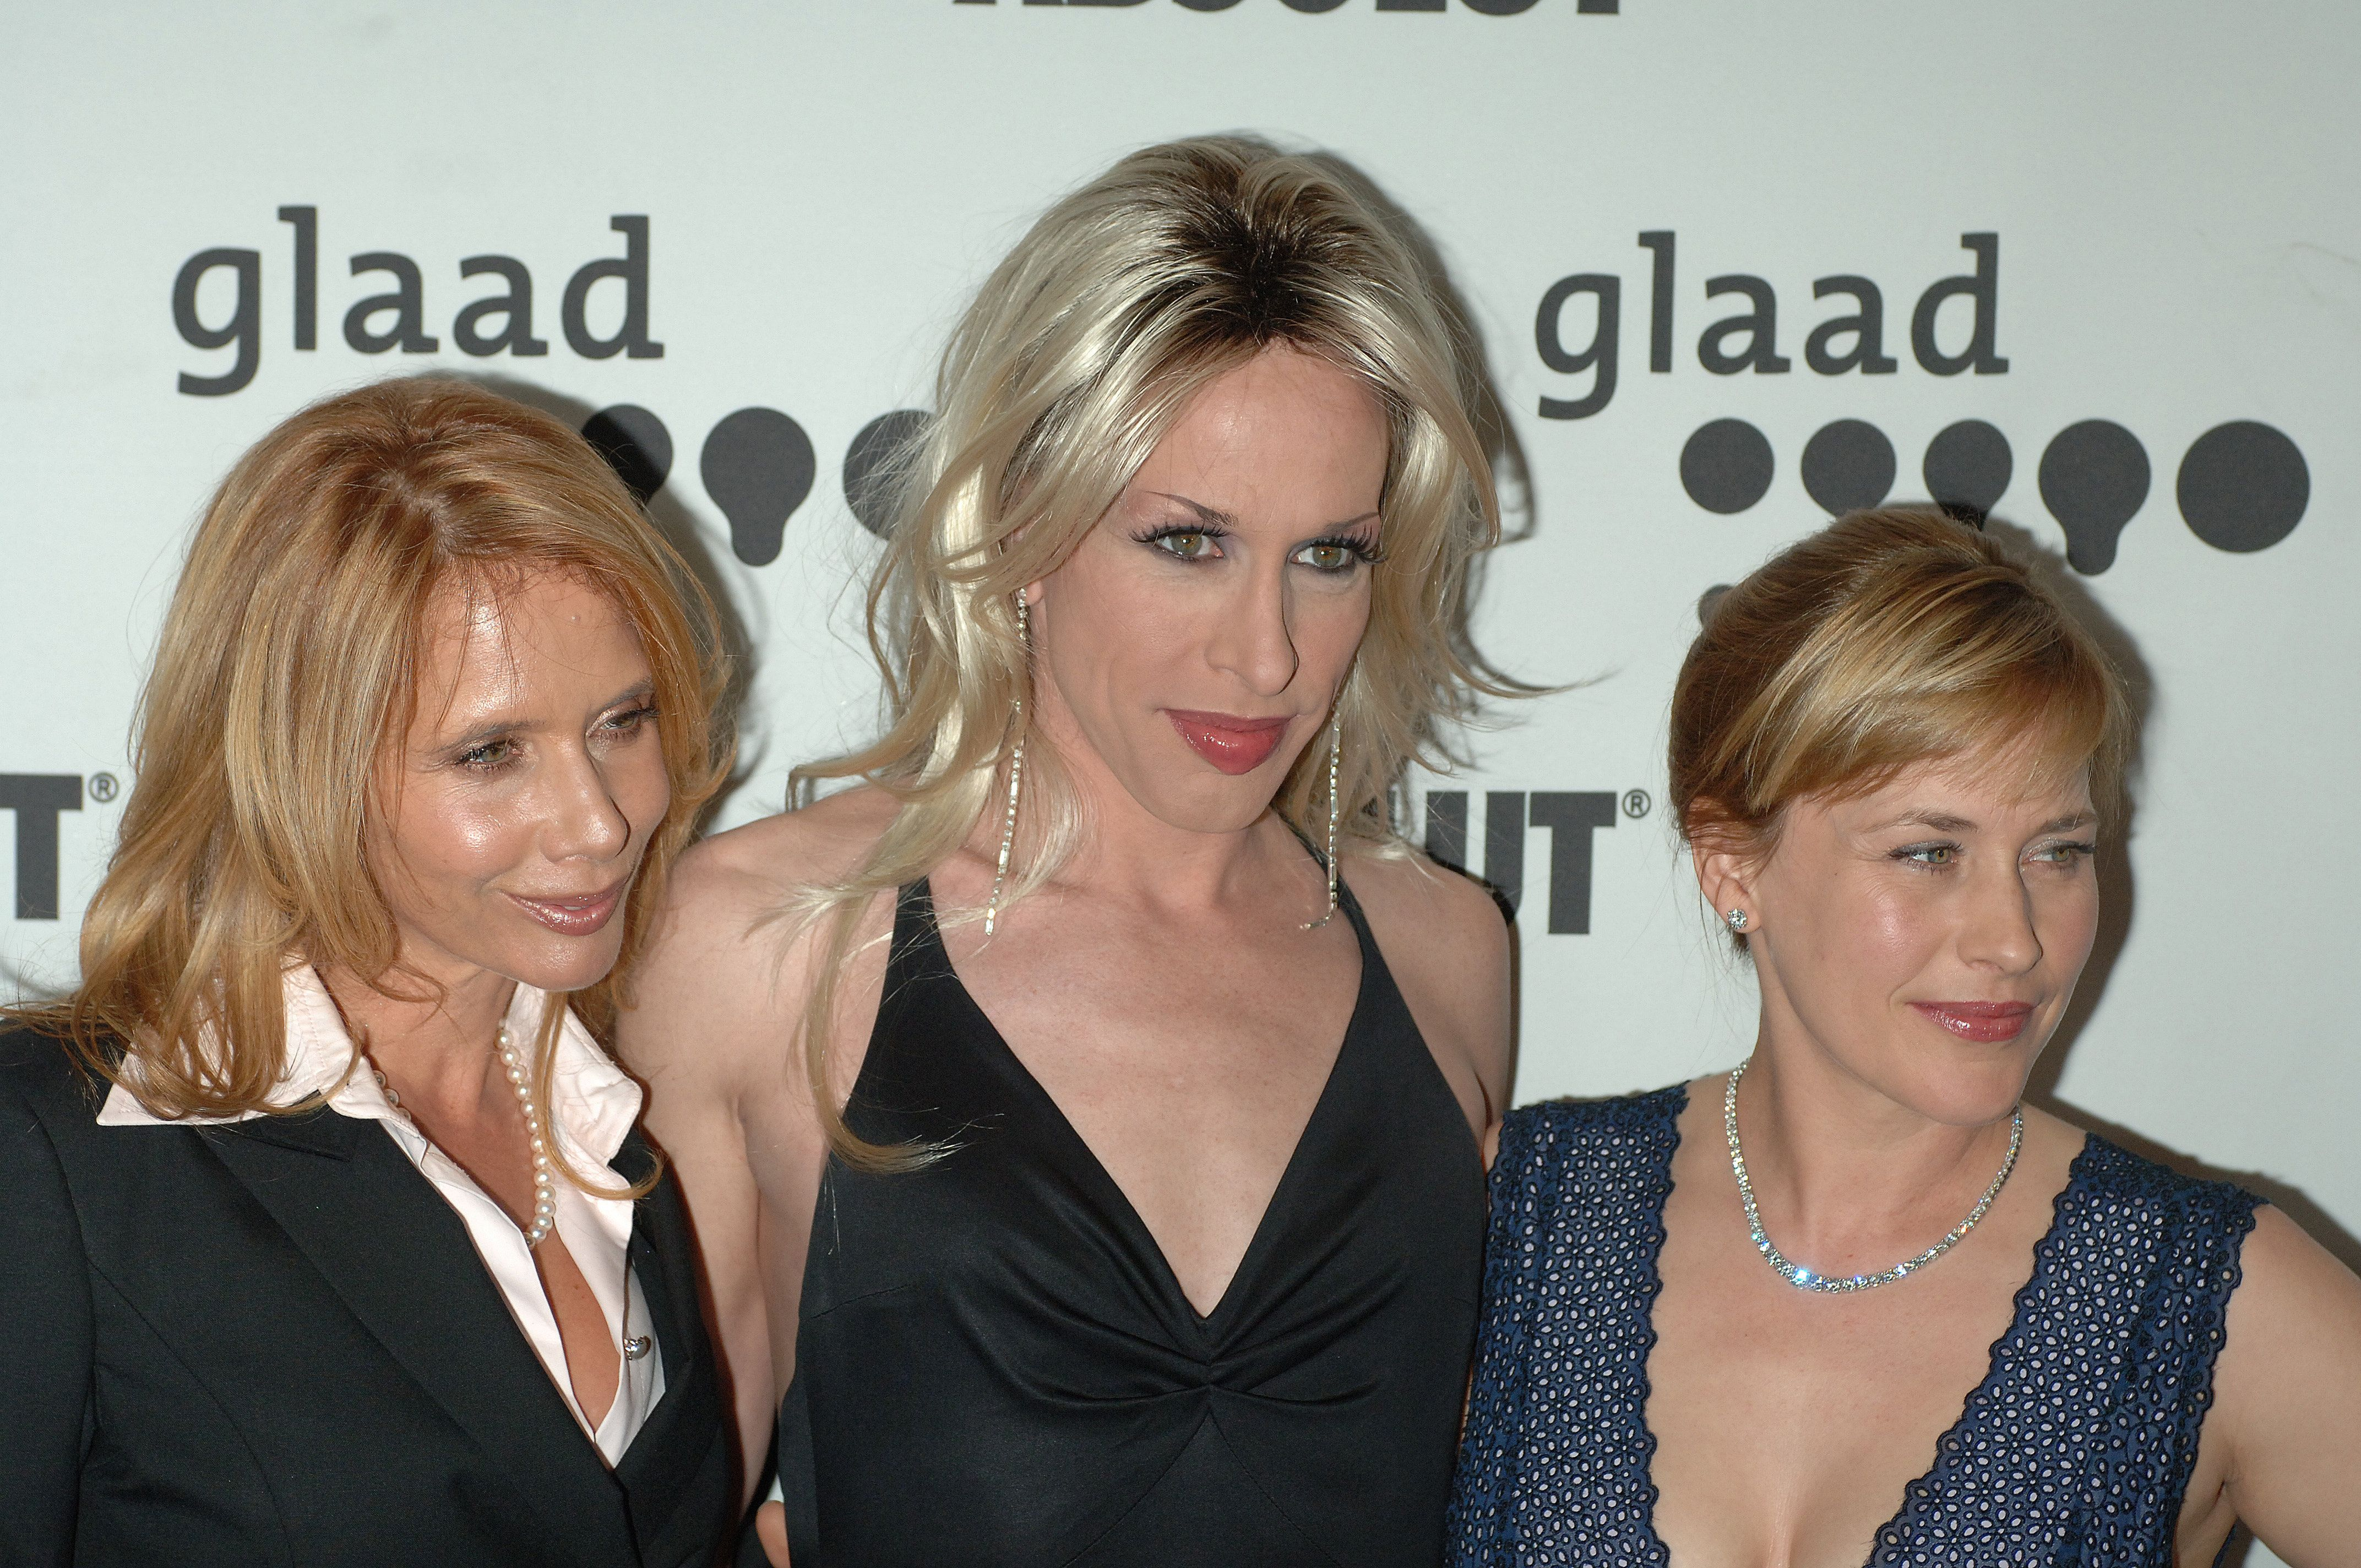 (L-R) Rosanna, Alexis and Patricia Arquette arrive at the 17th Annual GLAAD Media Awards held at the Kodak Theatre in Hollywood. (Photo by Frank Trapper/Corbis via Getty Images)